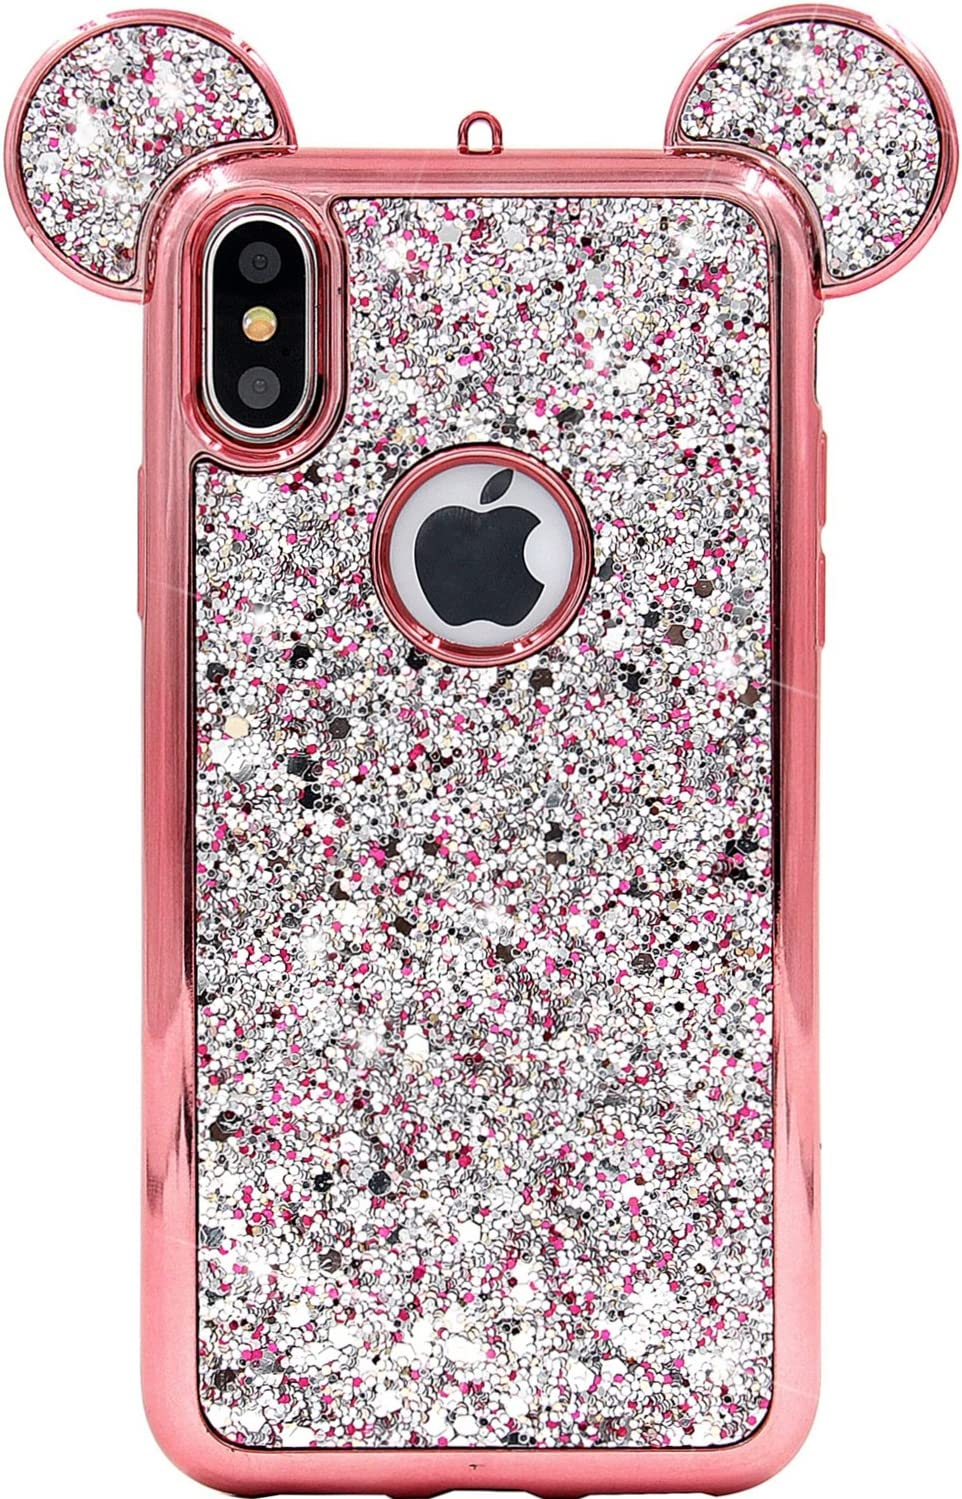 iPhone Xs Max Case, MC Fashion Cute Sparkle Bling Glitter 3D Mickey Mouse Ears Soft TPU Rubber Case Teens Girls Women for Apple iPhone Xs Max (2018) 6.5-Inch (Rose Gold)